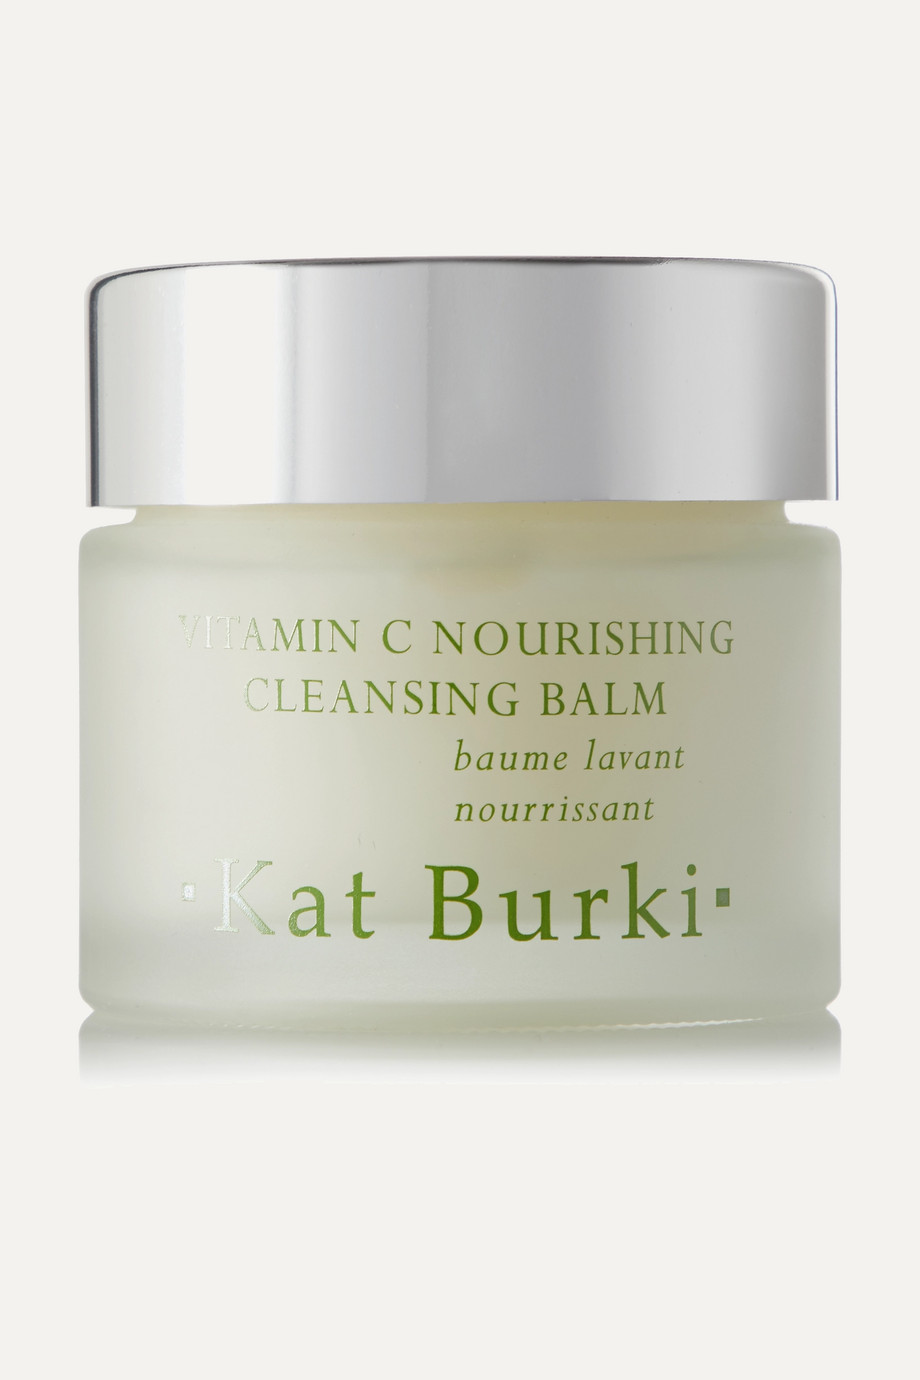 Kat Burki Vitamin C Nourishing Cleansing Balm, 59ml